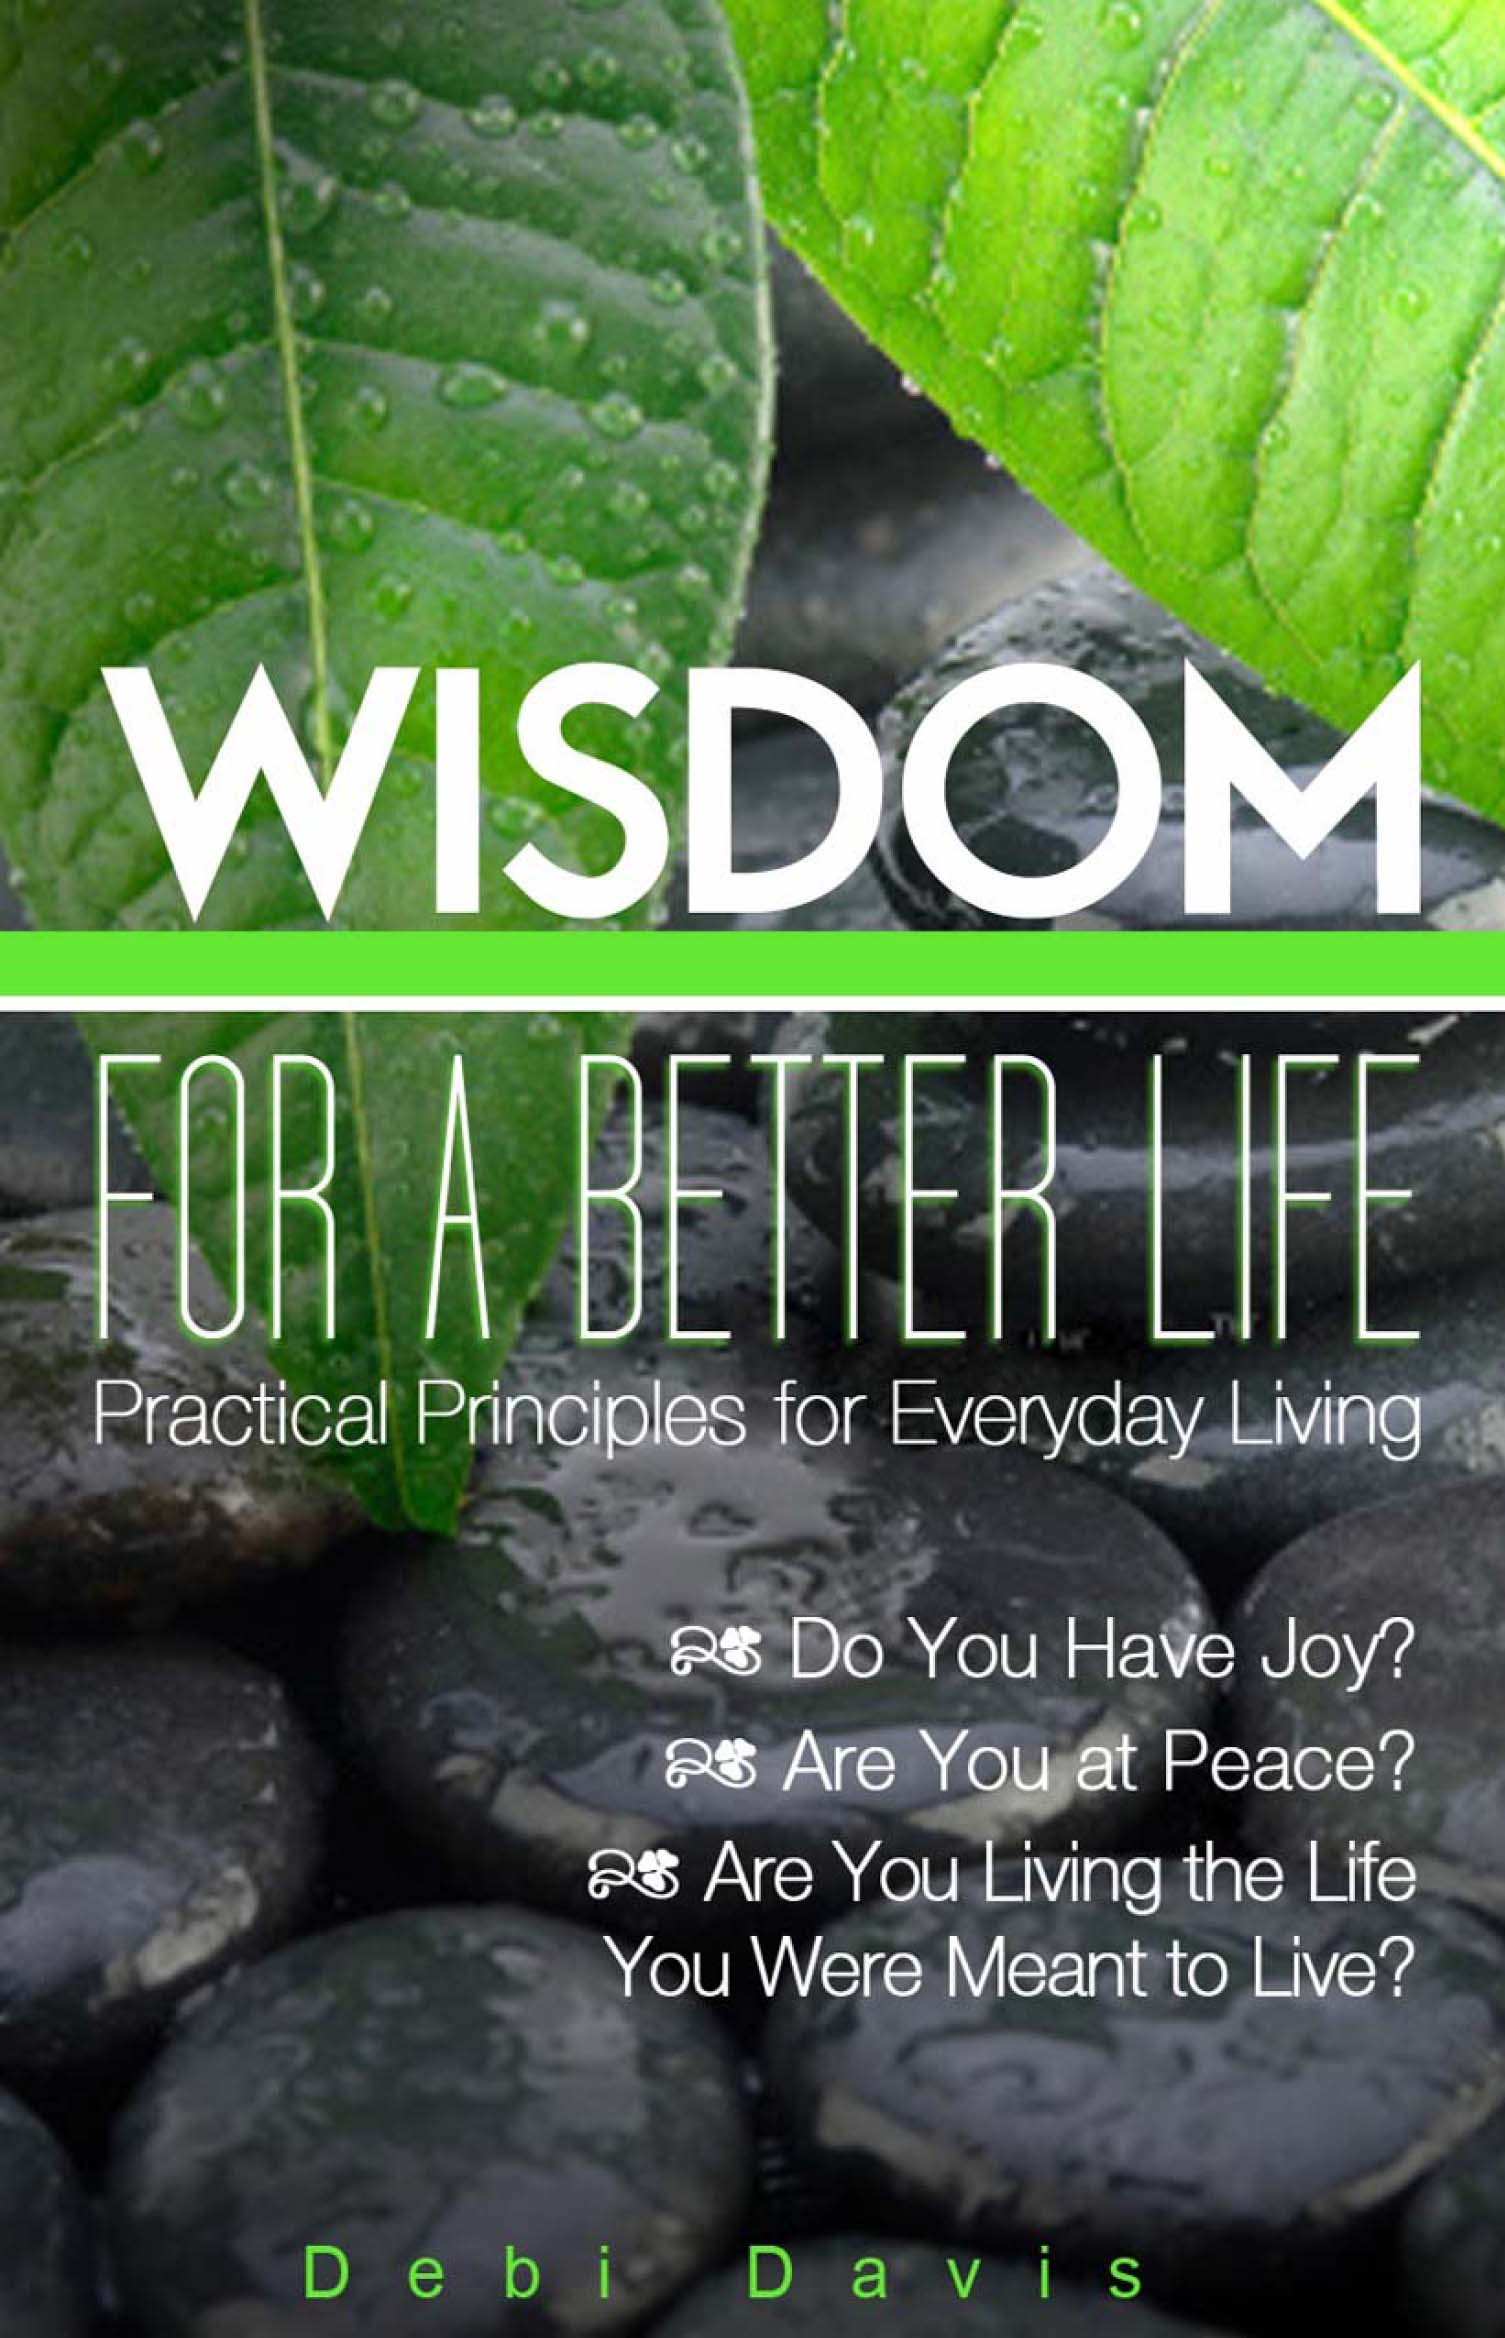 Wisdom for a Better Life